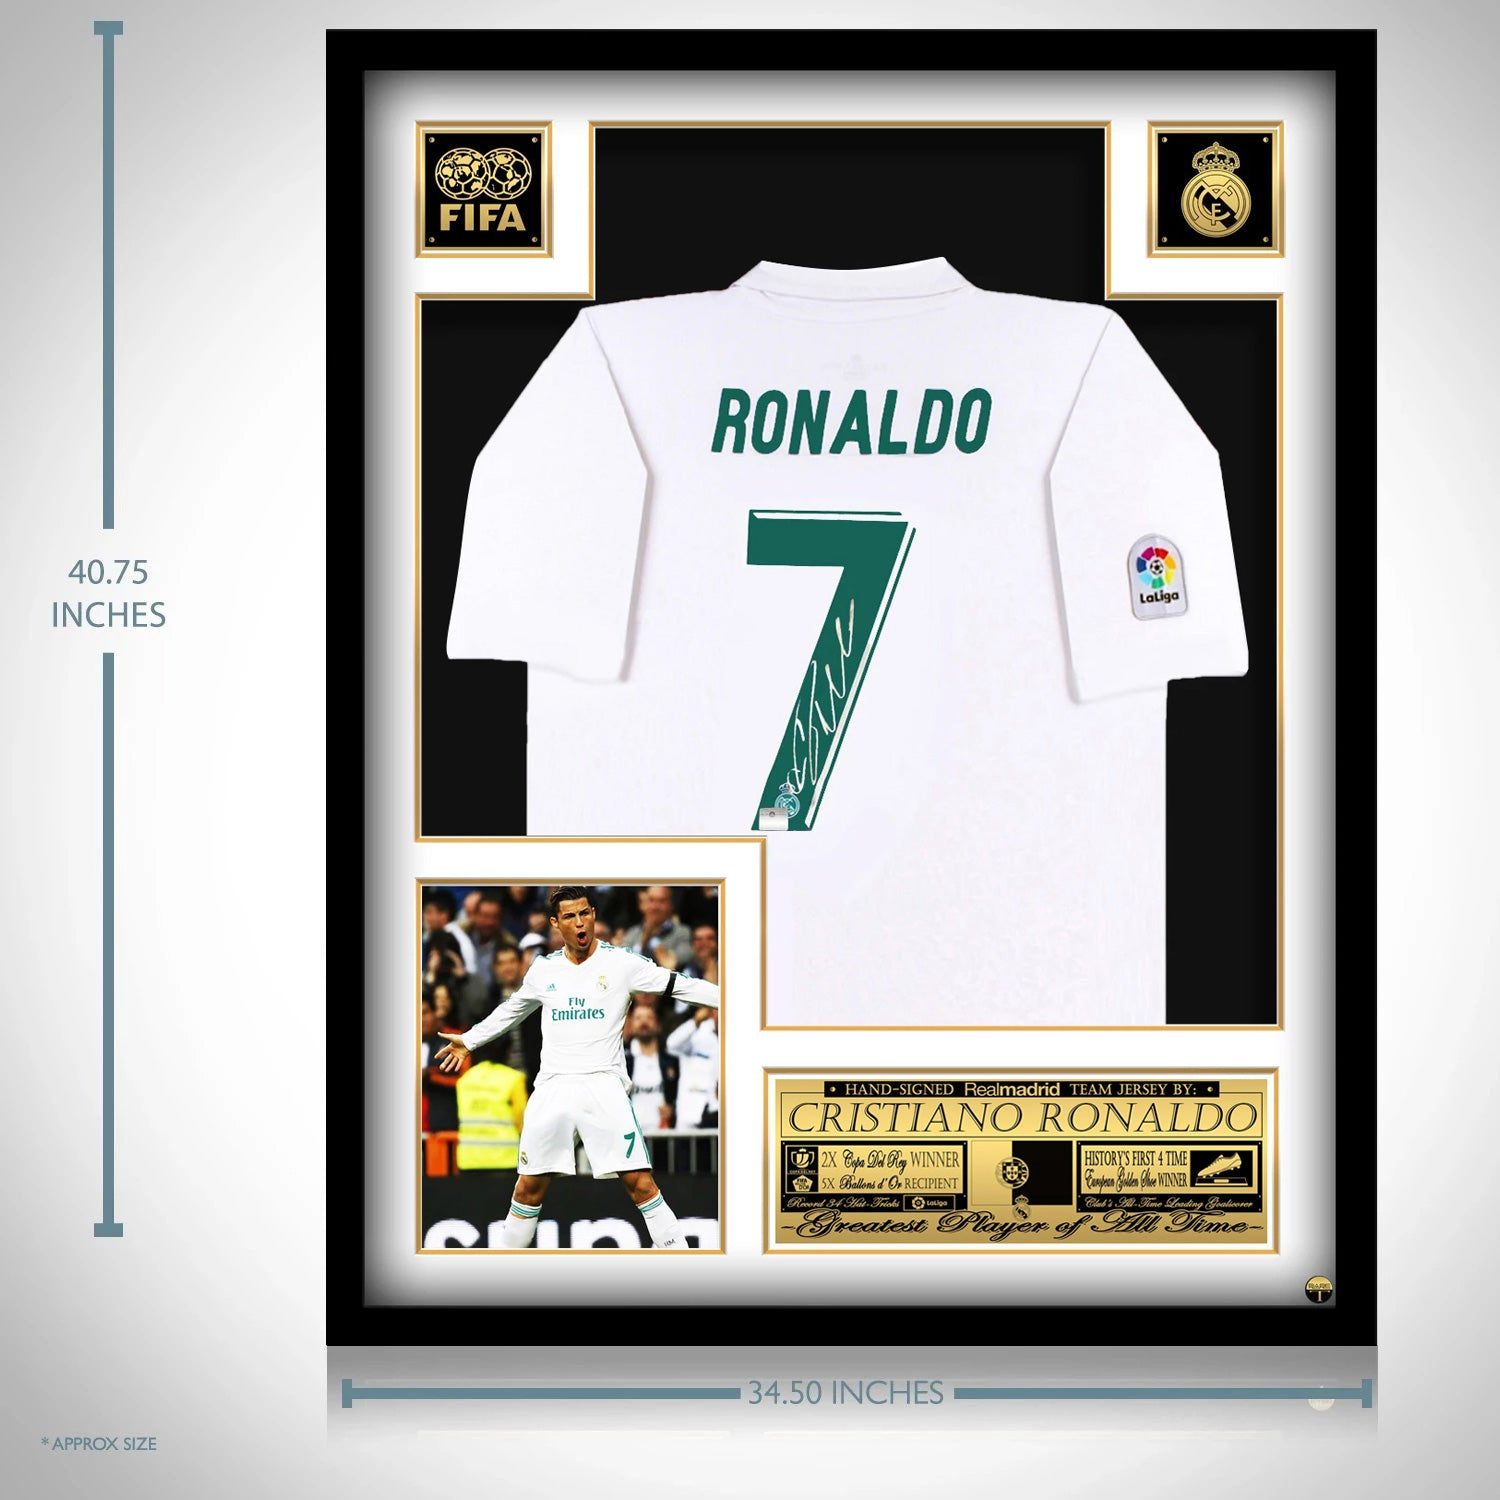 Cristiano Ronaldo Real Madrid Hand Signed Jersey By 7 Christiano Ron Rare T